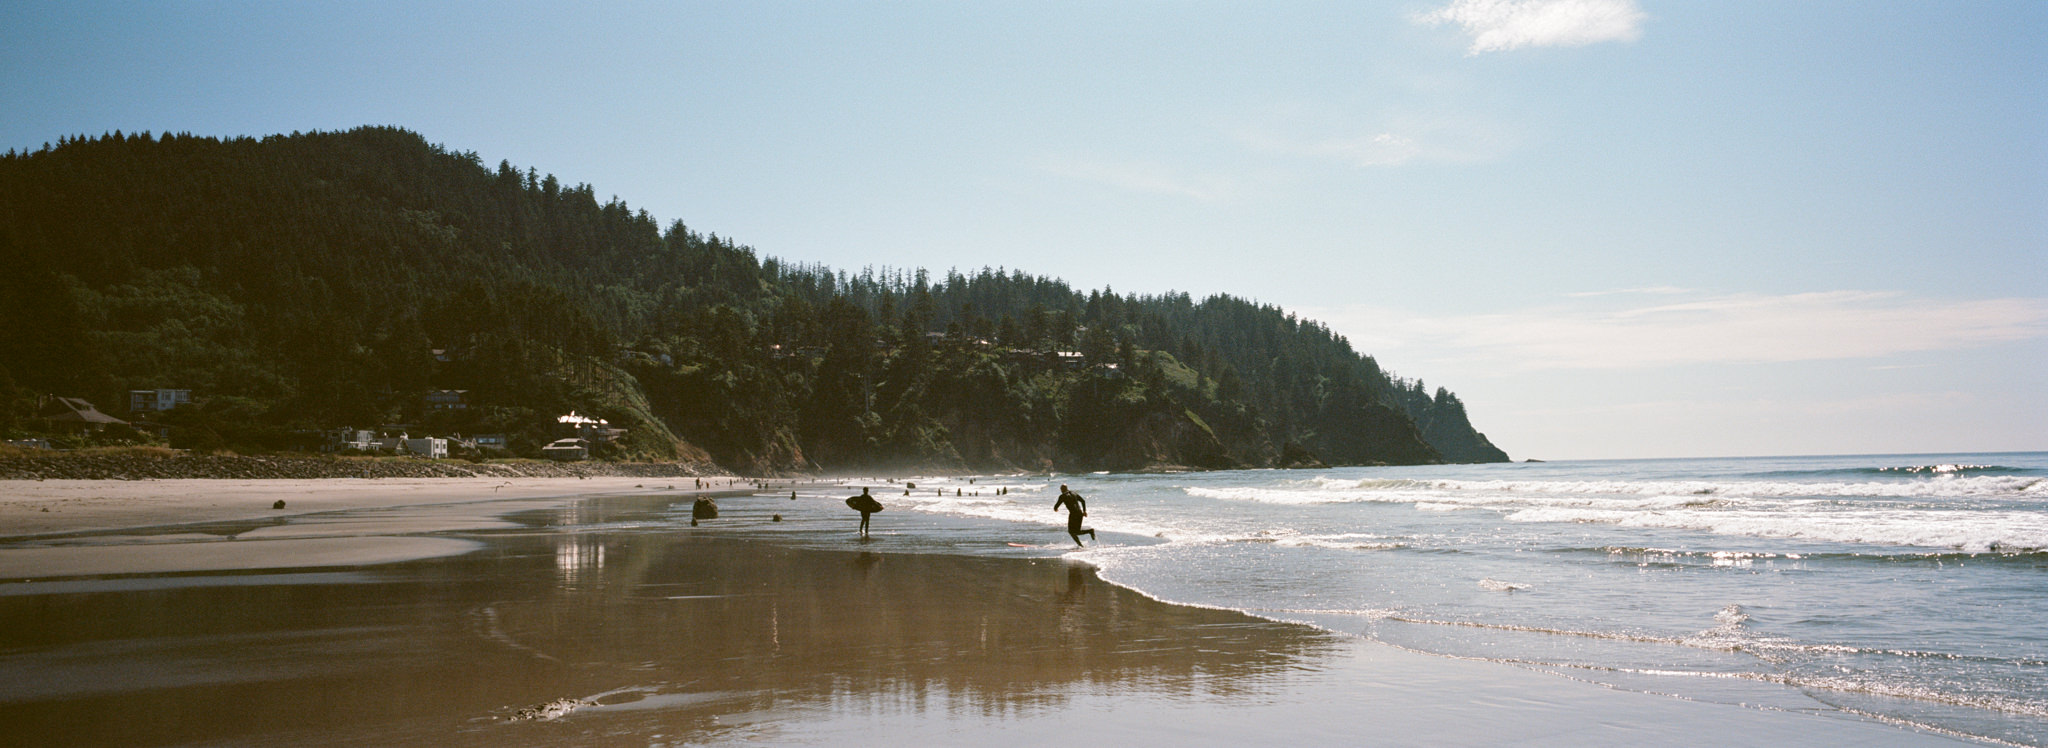 oregon-coast-thewarmtharoundyou-portland-wedding-photographers-99.jpg